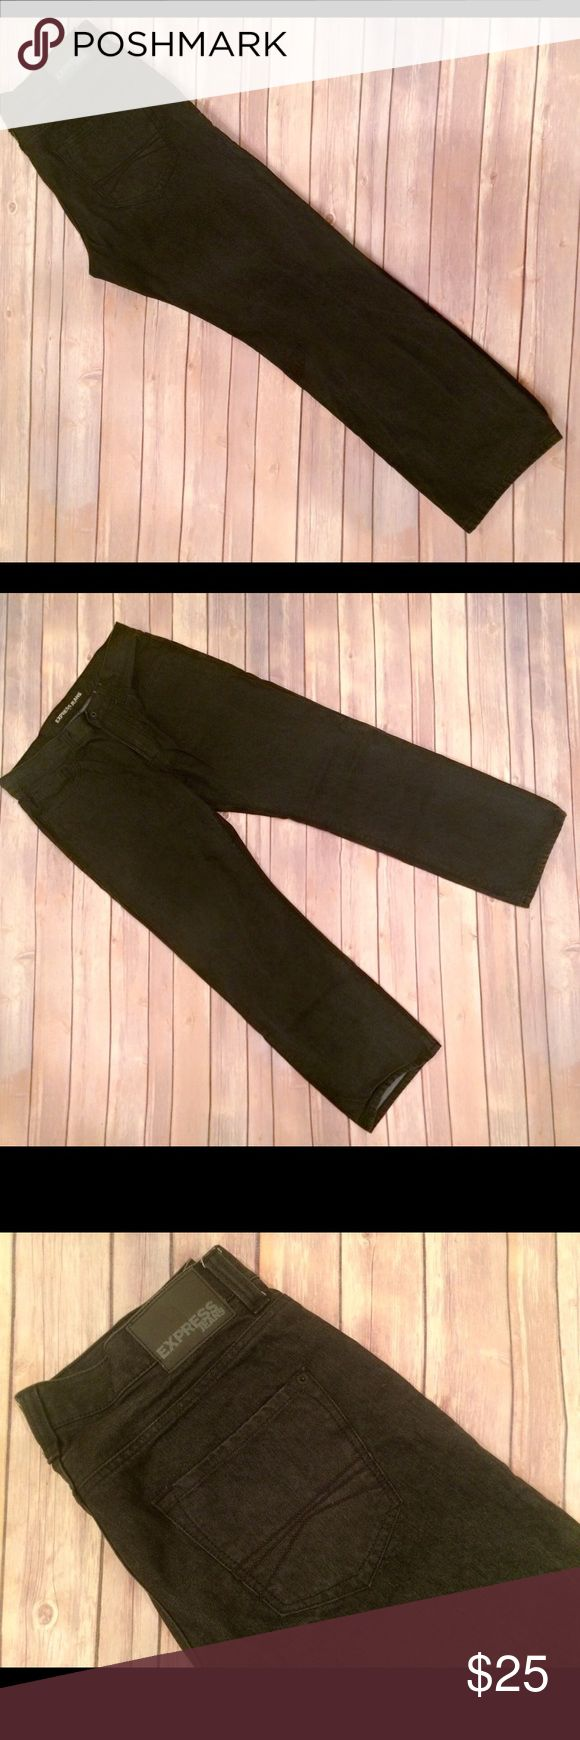 Donated to Red Cross/Express Men Jeans Worn only once & washed! Express Men Blake Jeans in black.  Loose fit style, front & back pockets. No defects. Express Jeans Bootcut